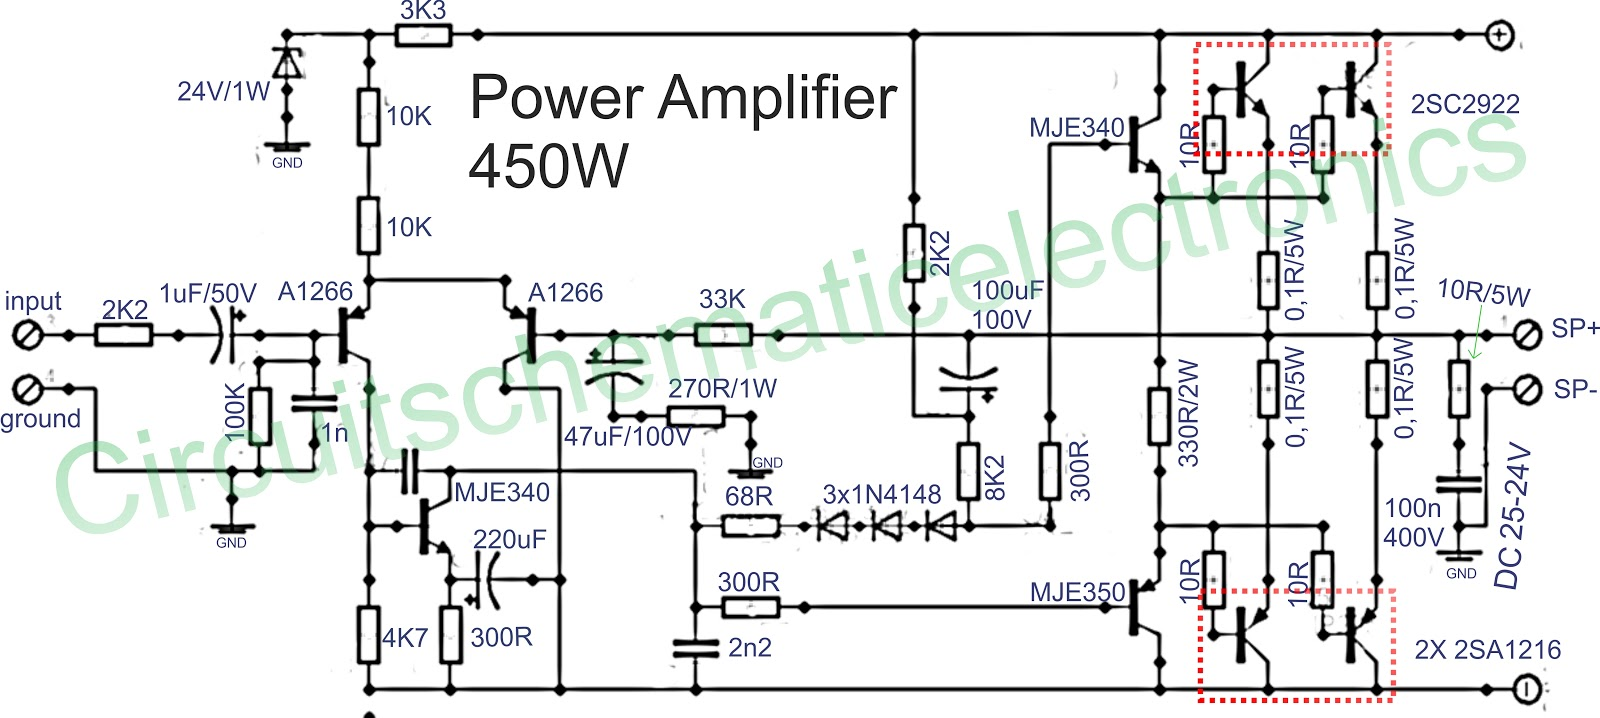 Power amplifier 450w with sanken electronic circuit power amplifier 450w with sanken publicscrutiny Image collections